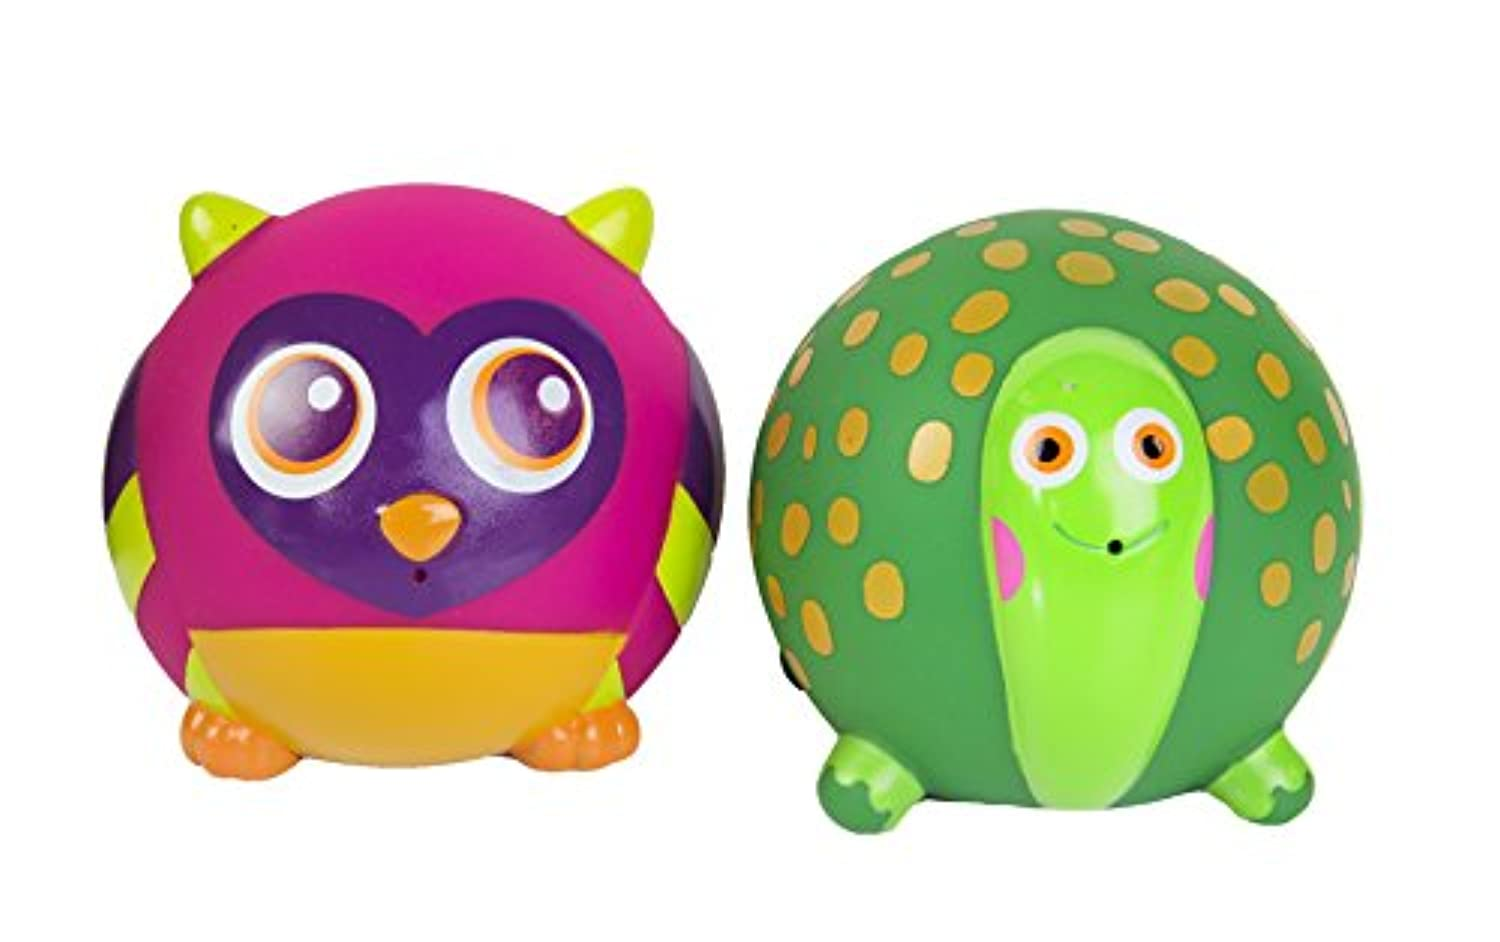 Oops Bath Friend Squirters with Turtle and Owl - Encourages Imaginative and Mental Development - Safe and Easy Clean - 11-Piece - Ages 4 Months and Up by Oops